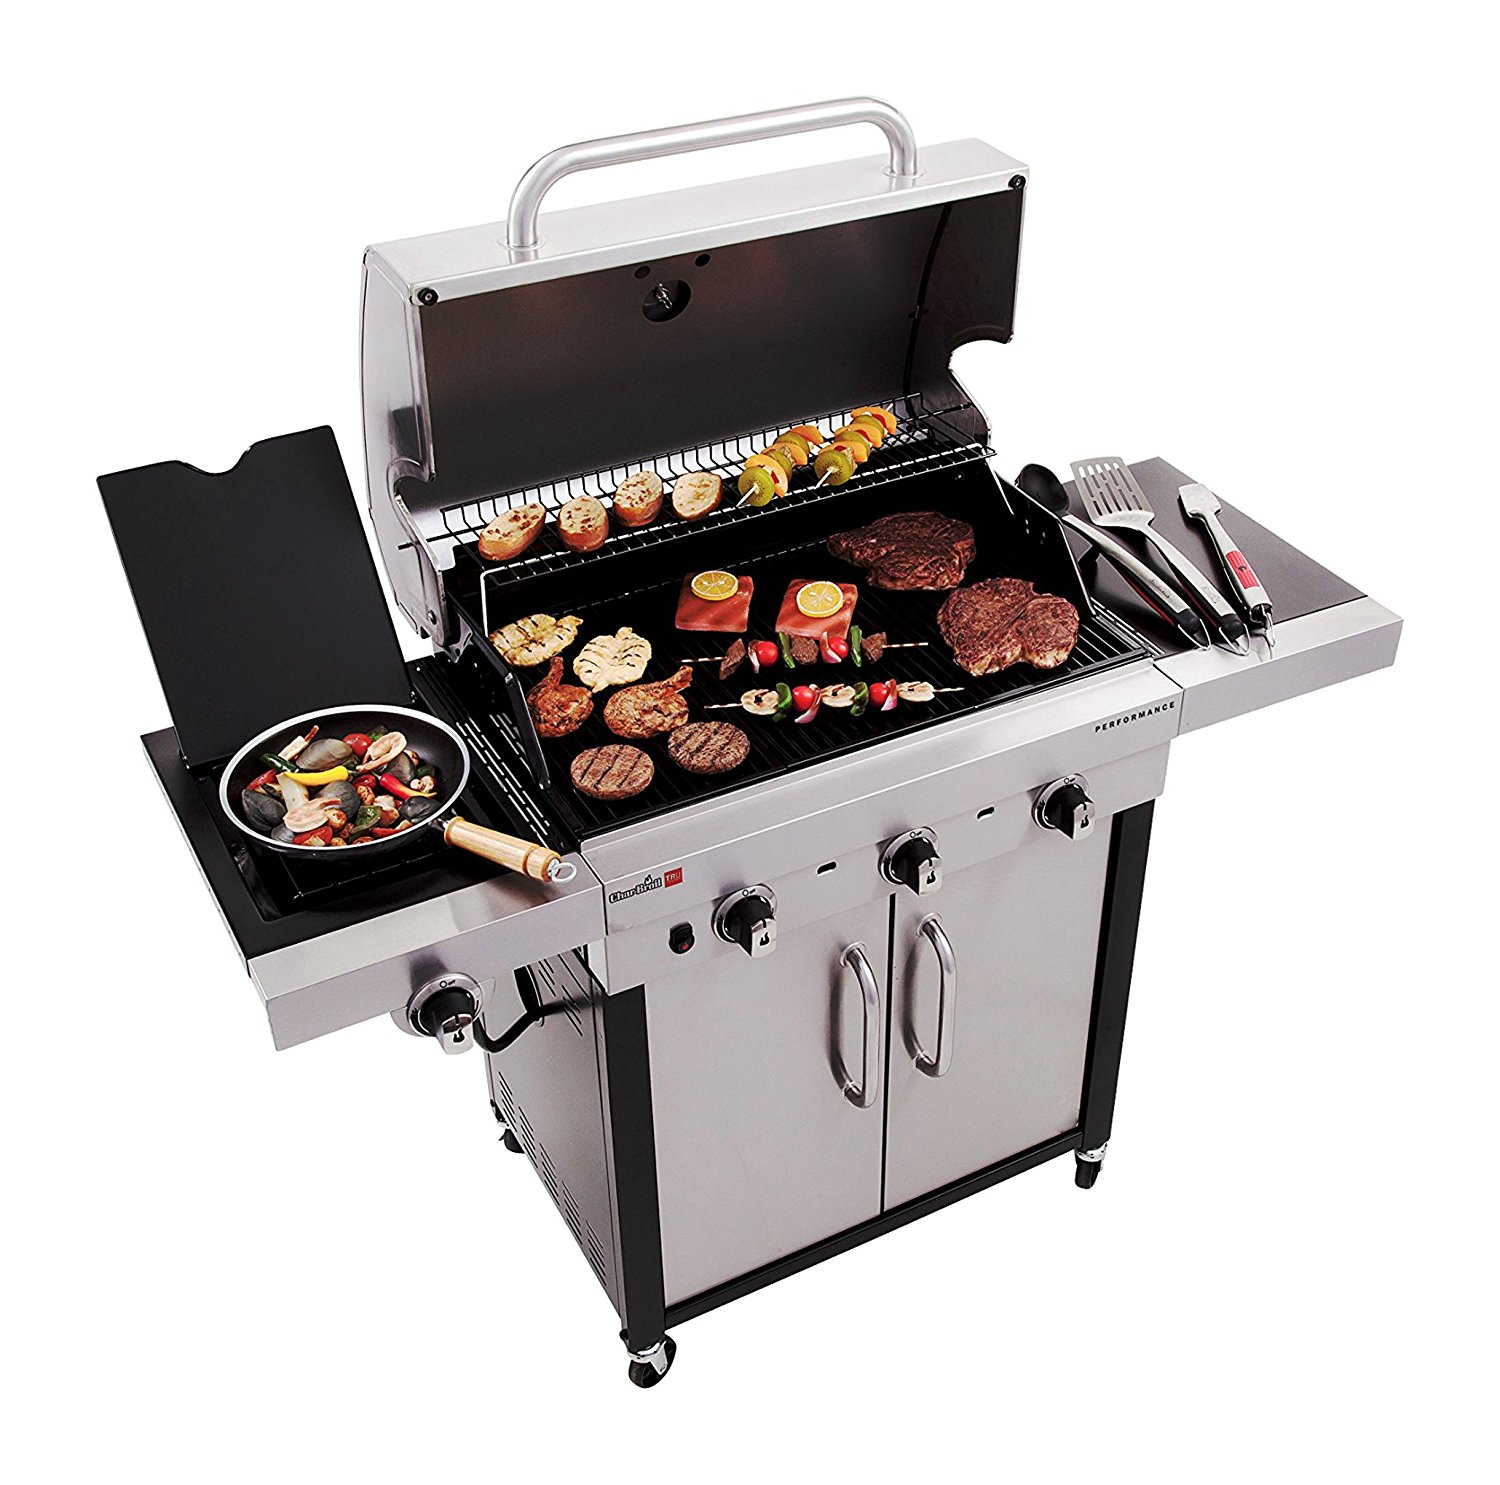 Gasgrill Klein Balkon Gasgrill Klein Alessi Optional Gas Grill Bbq Bundle Alessi Gas